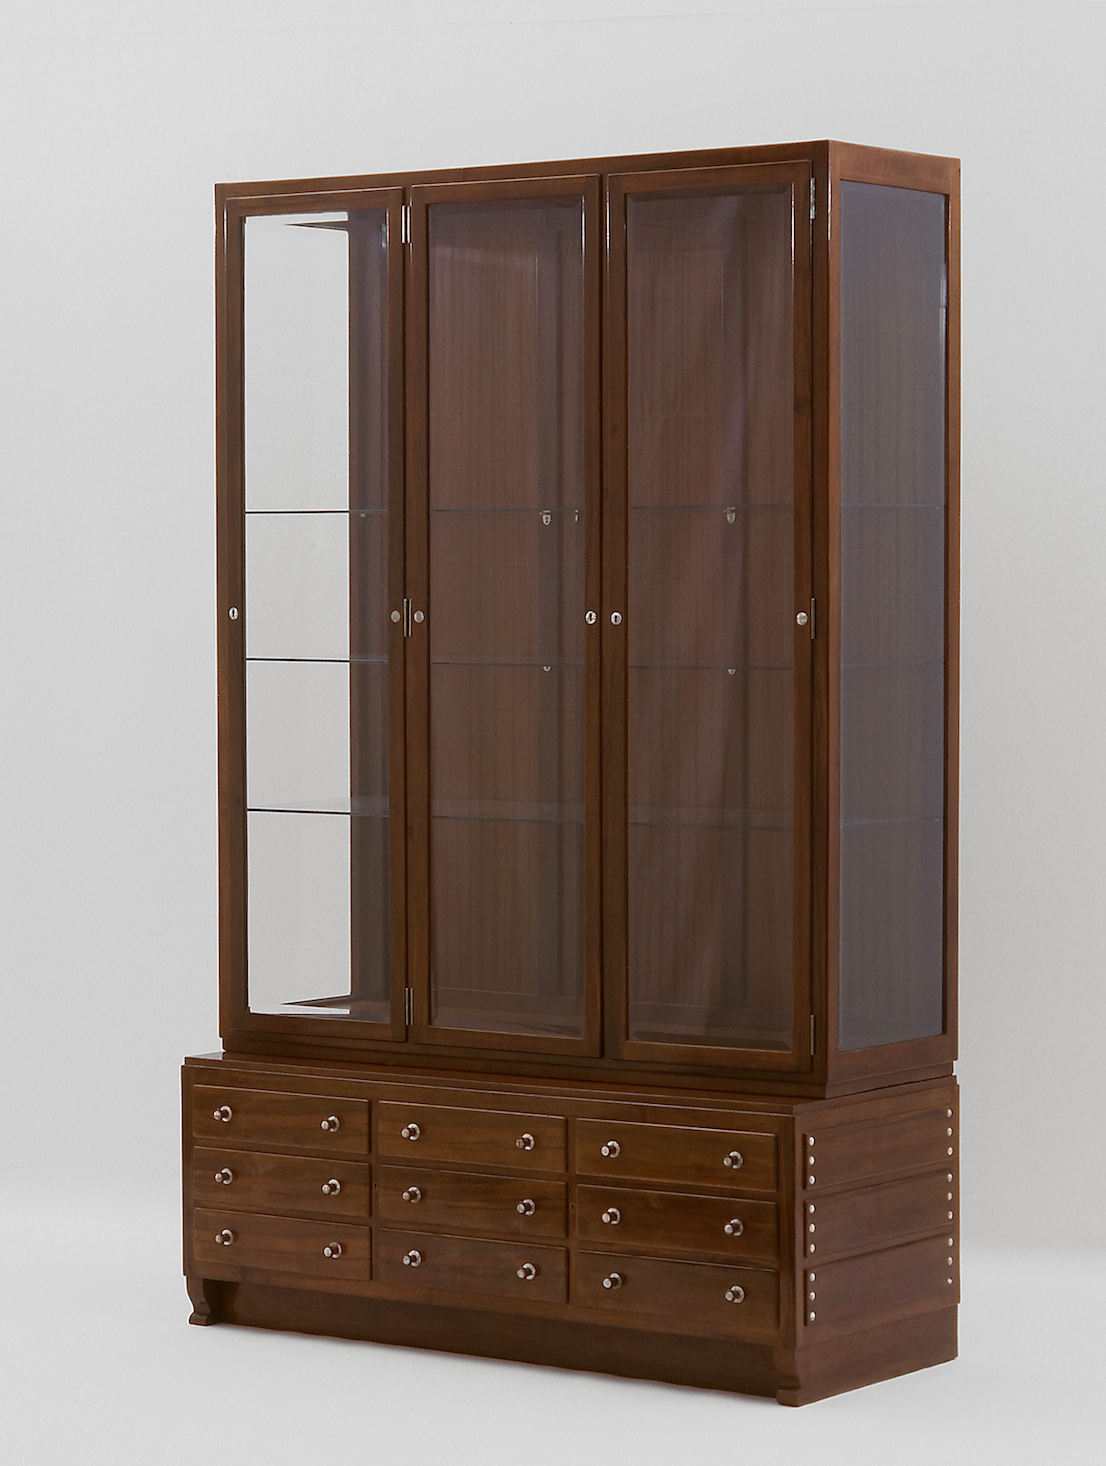 Otto Wagner dining room cabinet for Wagner's apartment on Köstlergasse, 1899 © MAK/Georg Mayer